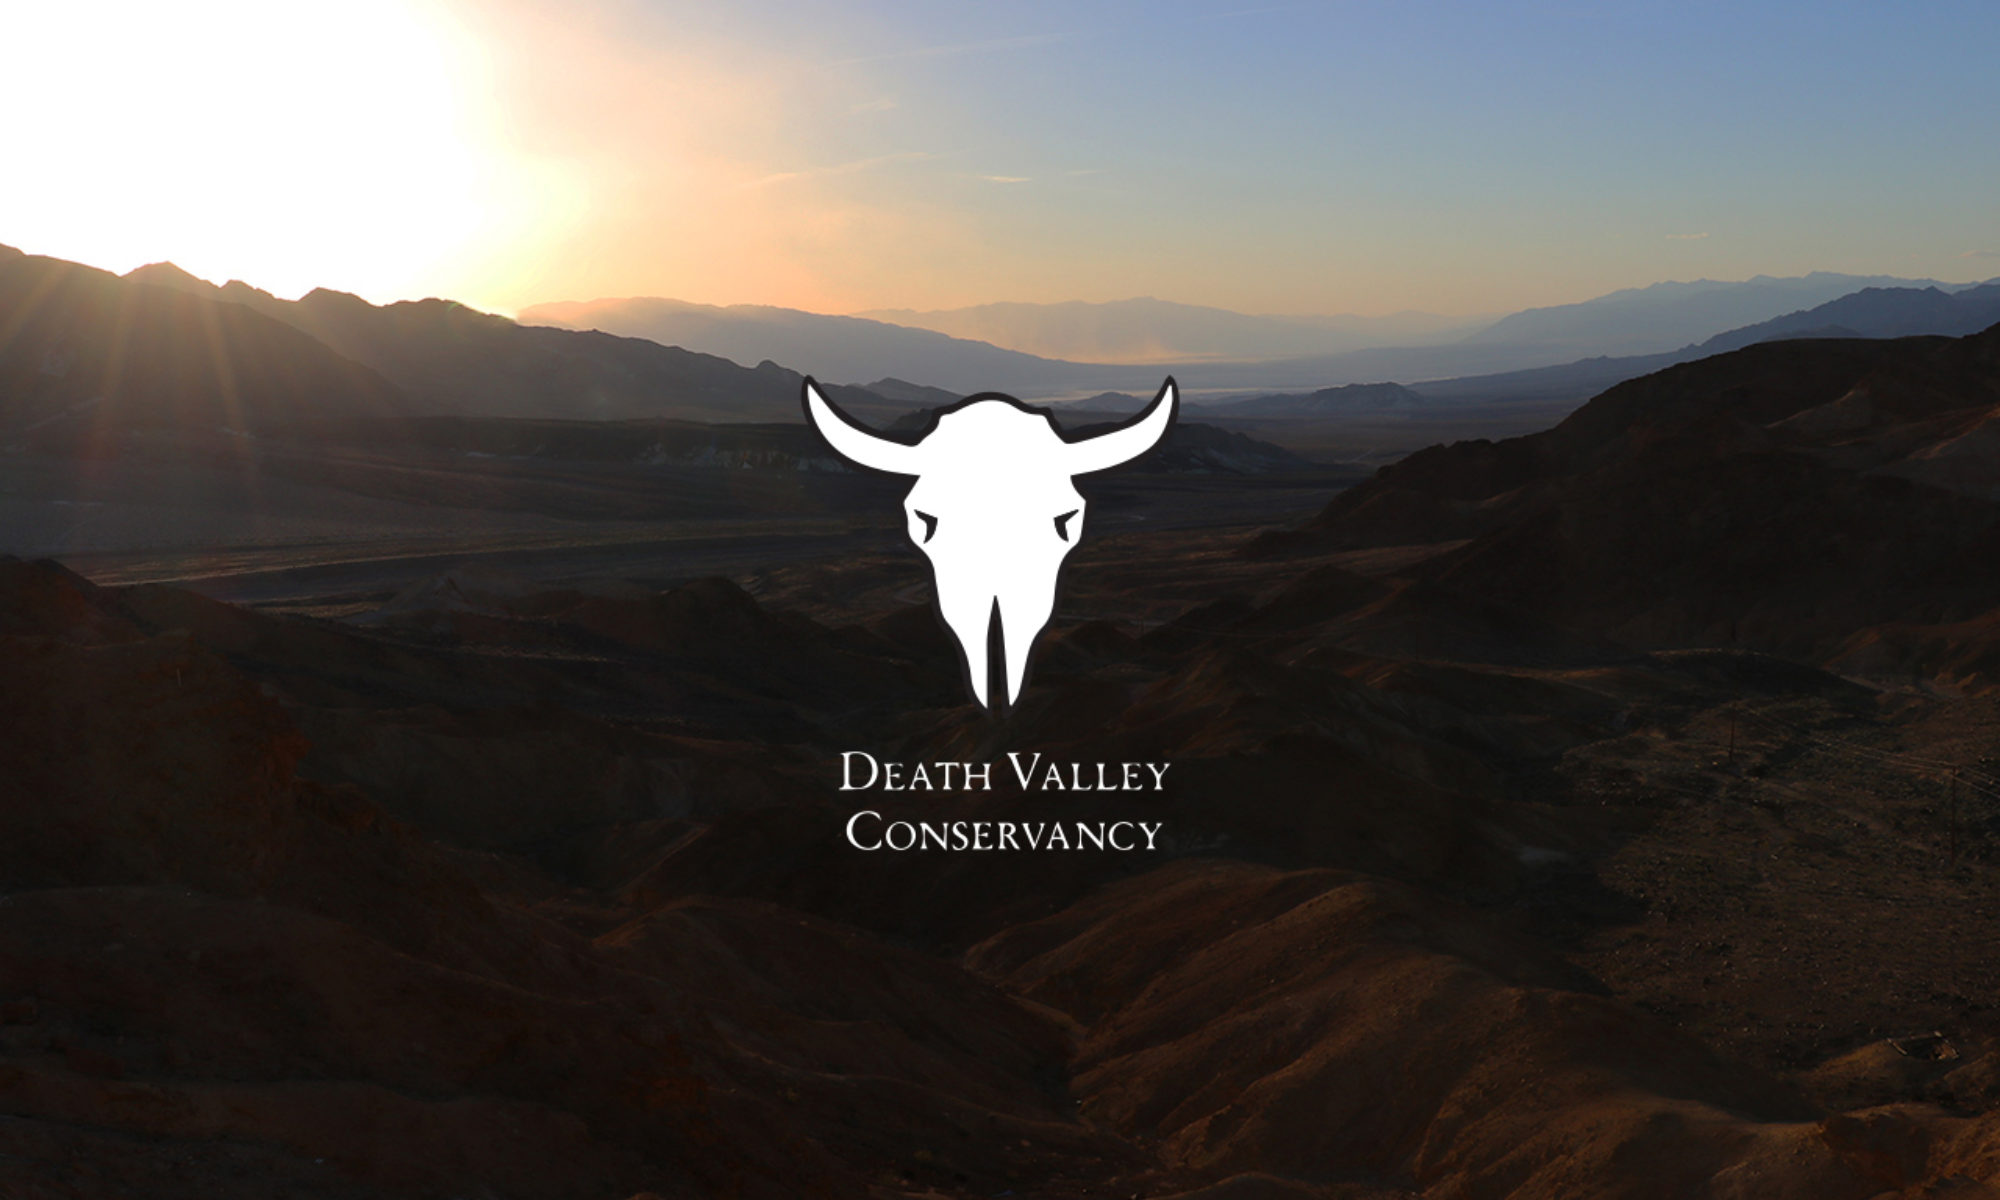 Death Valley Conservancy